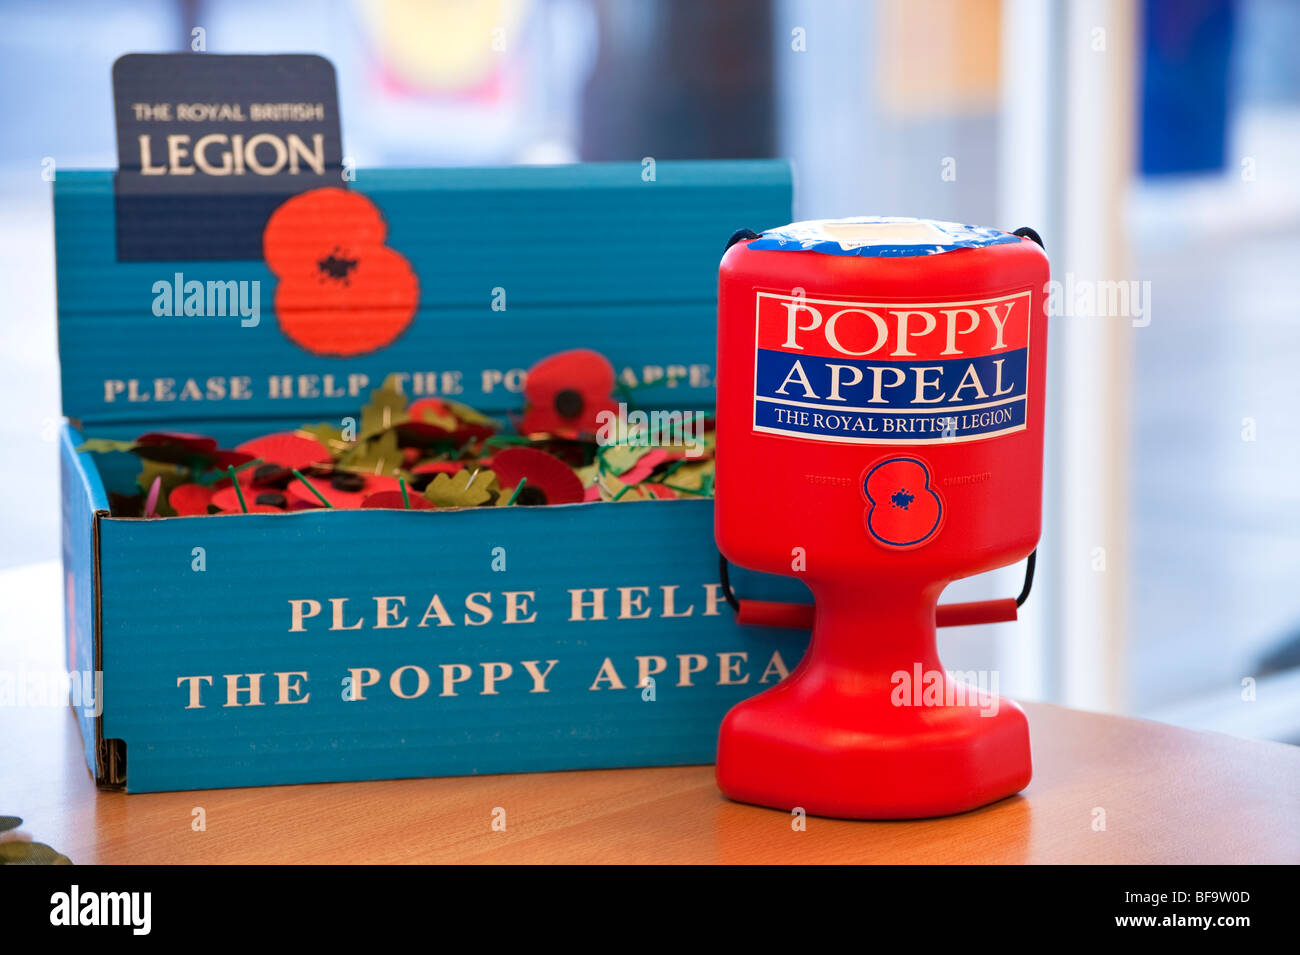 The Royal British Legion poppy appeal. Collection box full of red poppies. Charity tin taking money for ex-servicemen. - Stock Image